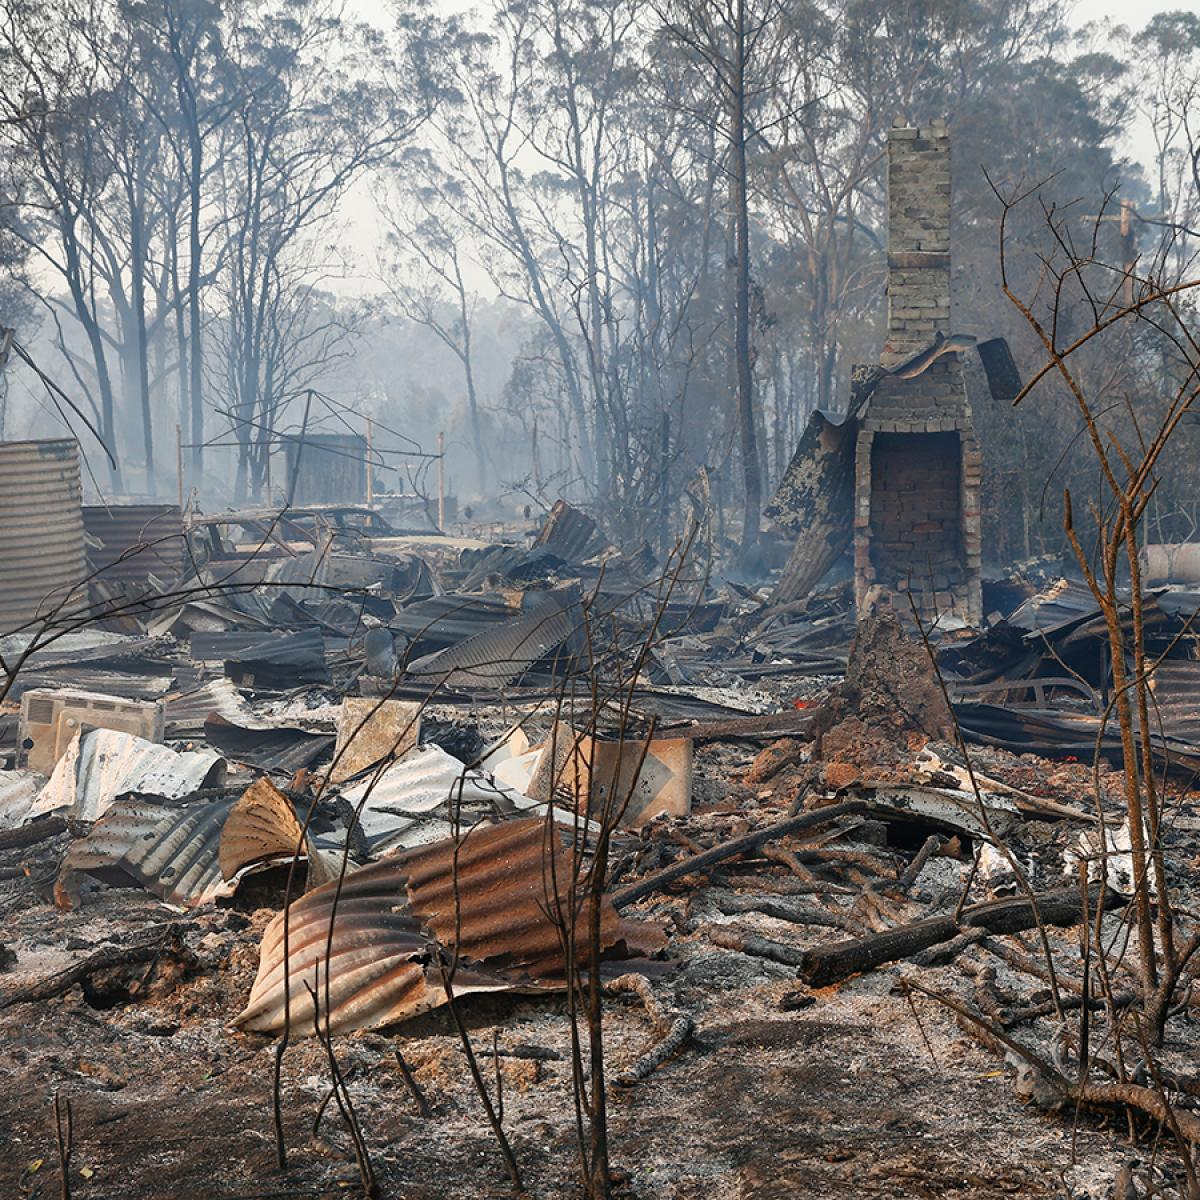 What Does Catastrophic Fire Danger Actually Mean?